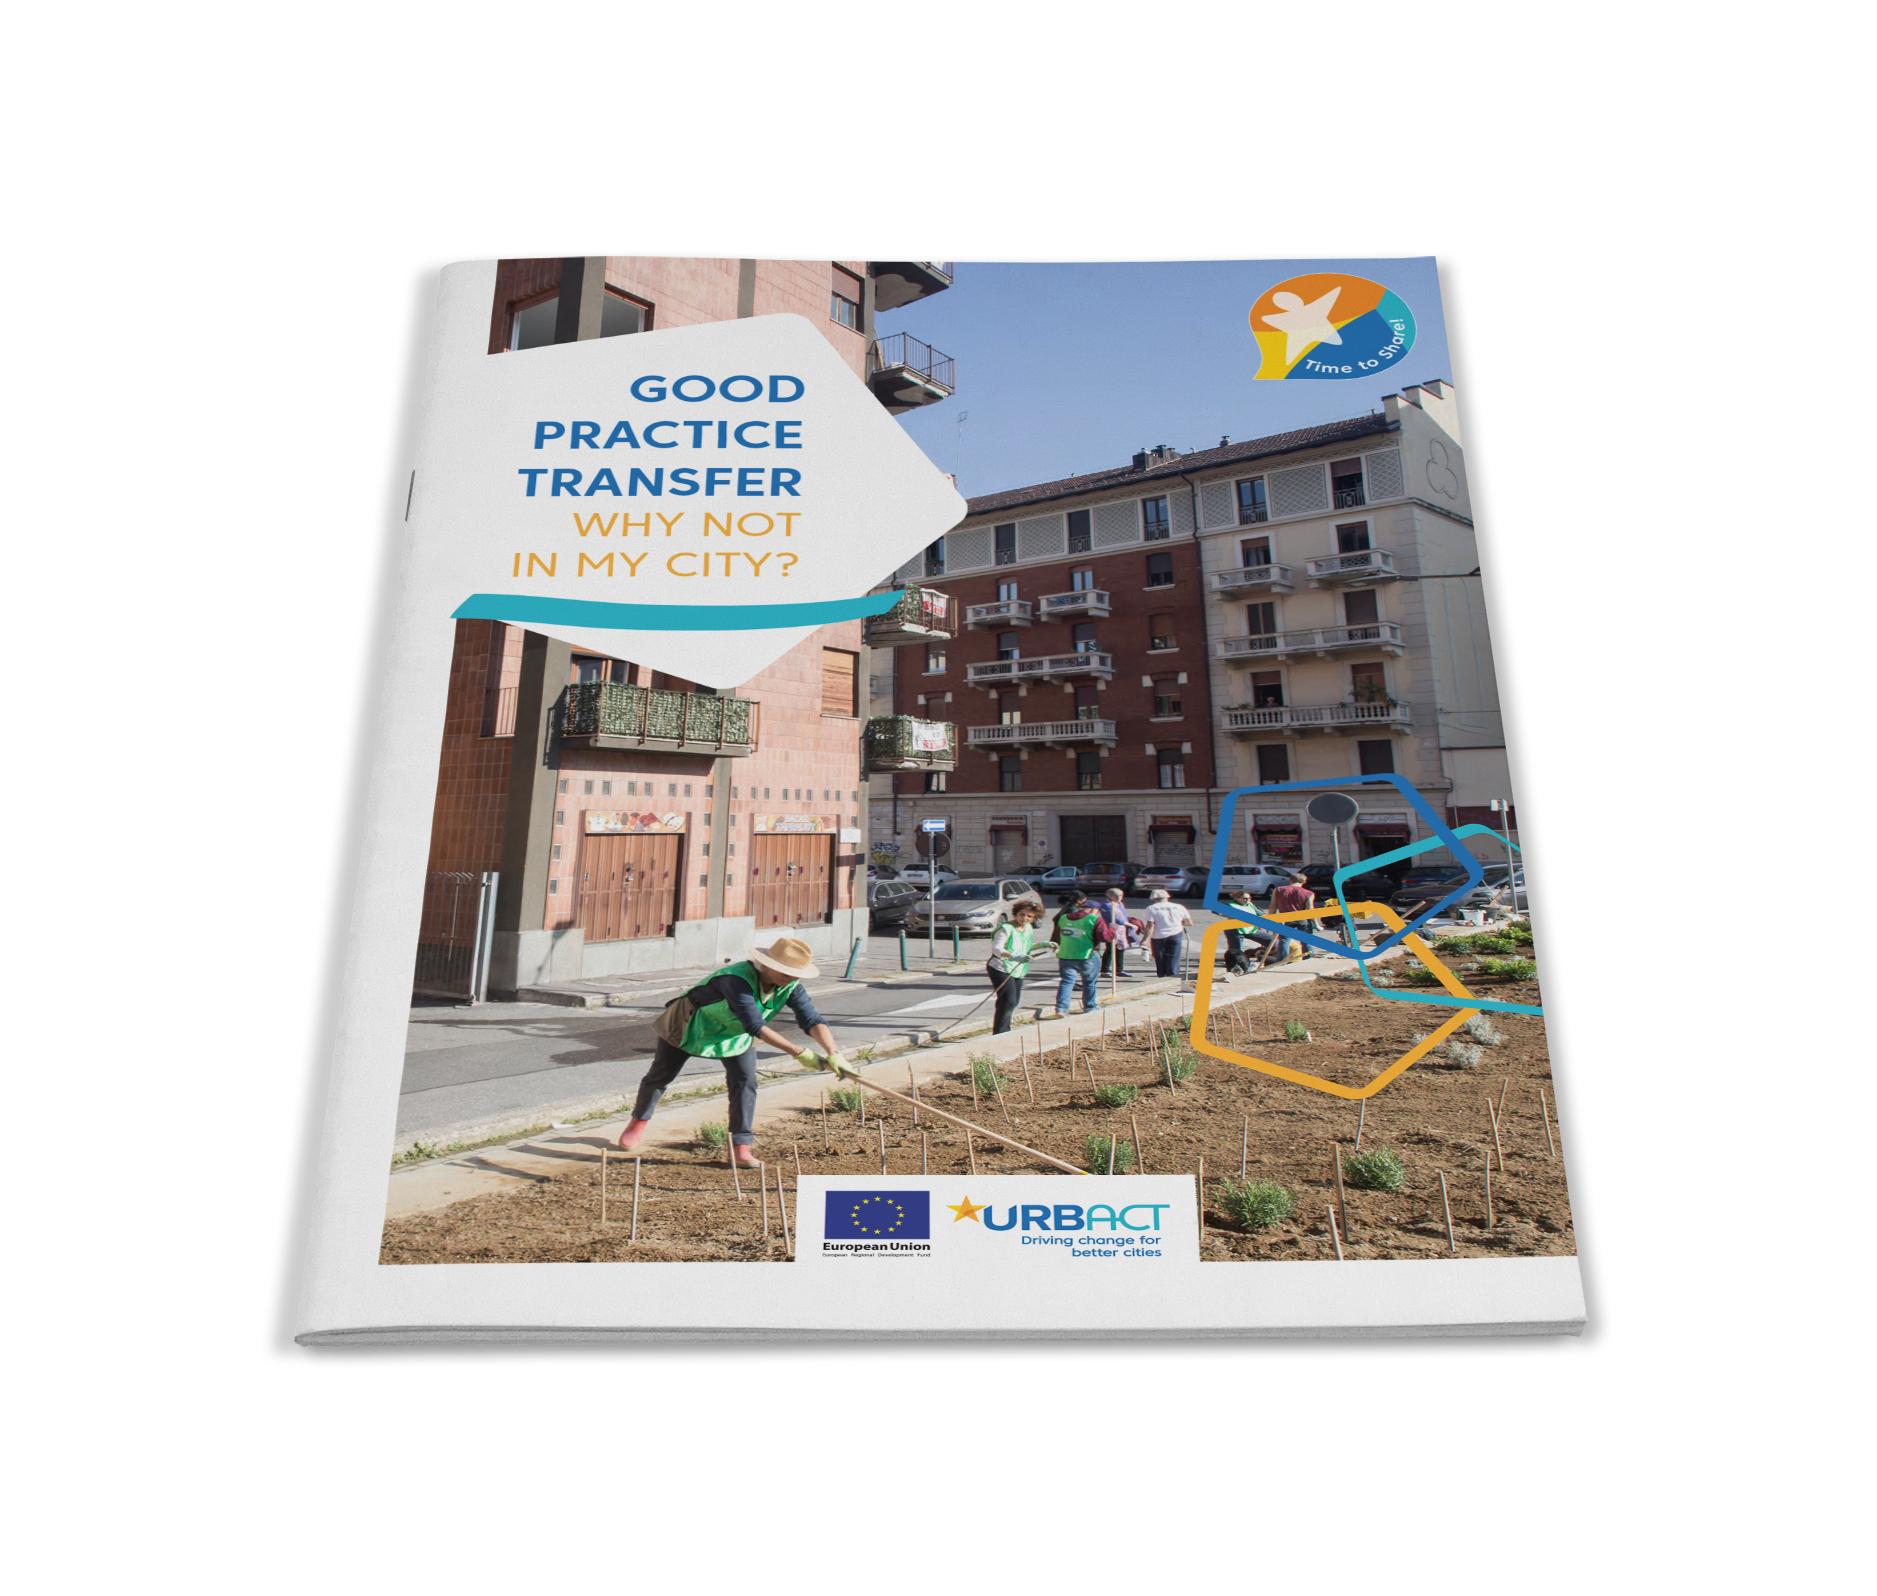 """How to transfer urban good practice? Check URBACT's latest publication """"Good Practice Transfer – Why not in my City?"""""""